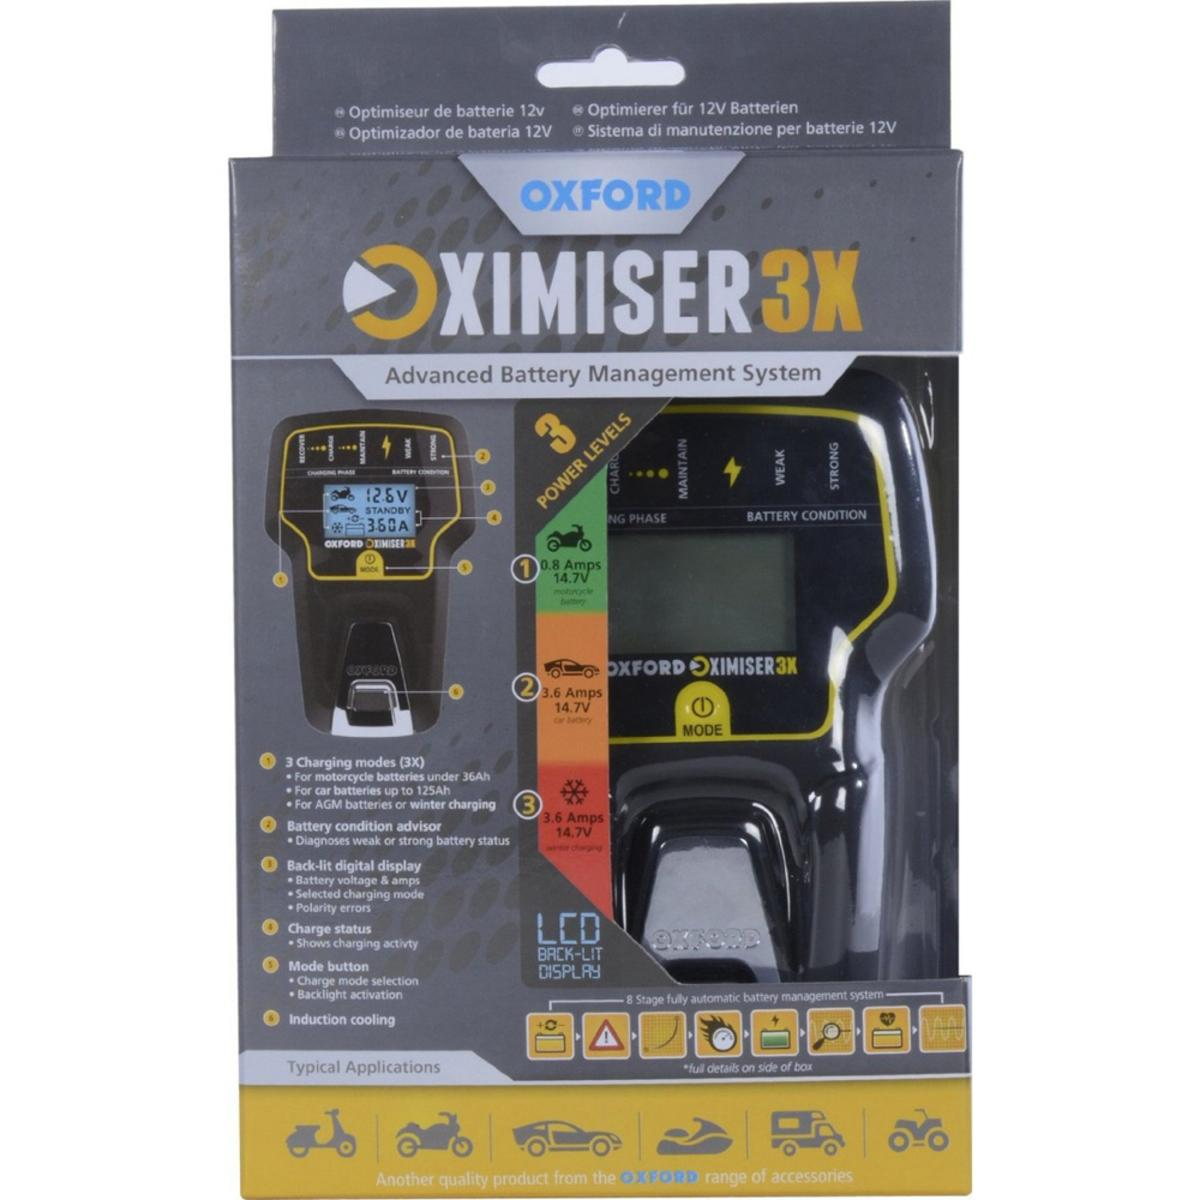 Oxford Oximiser 3X Essential Battery Management System